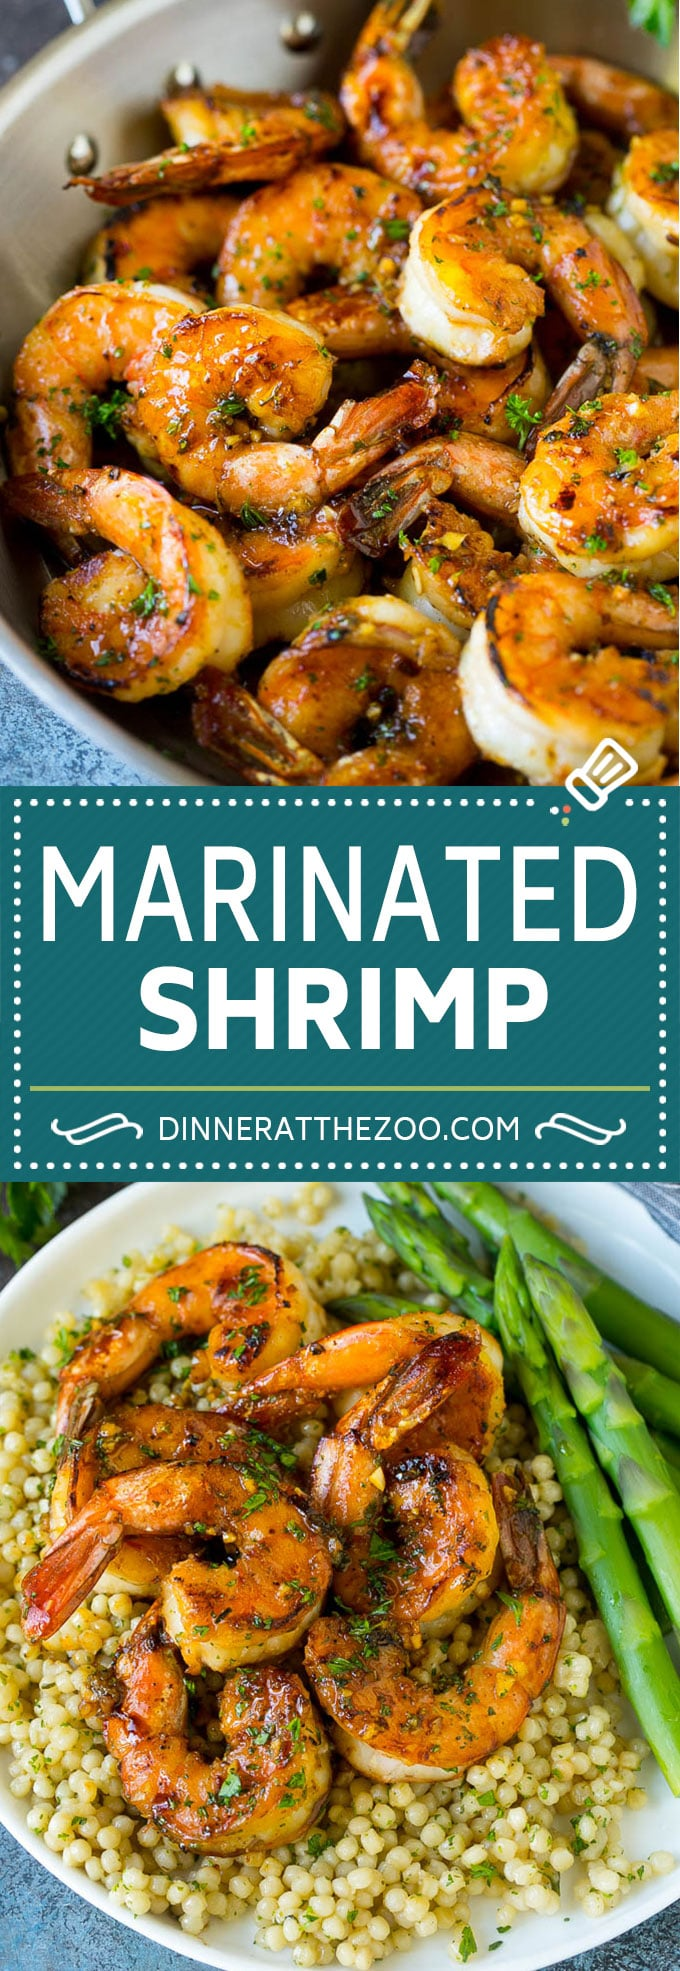 Marinated Shrimp Recipe | Shrimp Marinade | Grilled Shrimp | Sauteed Shrimp #shrimp #marinade #dinner #dinneratthezoo #grilling #shrimpseasoning